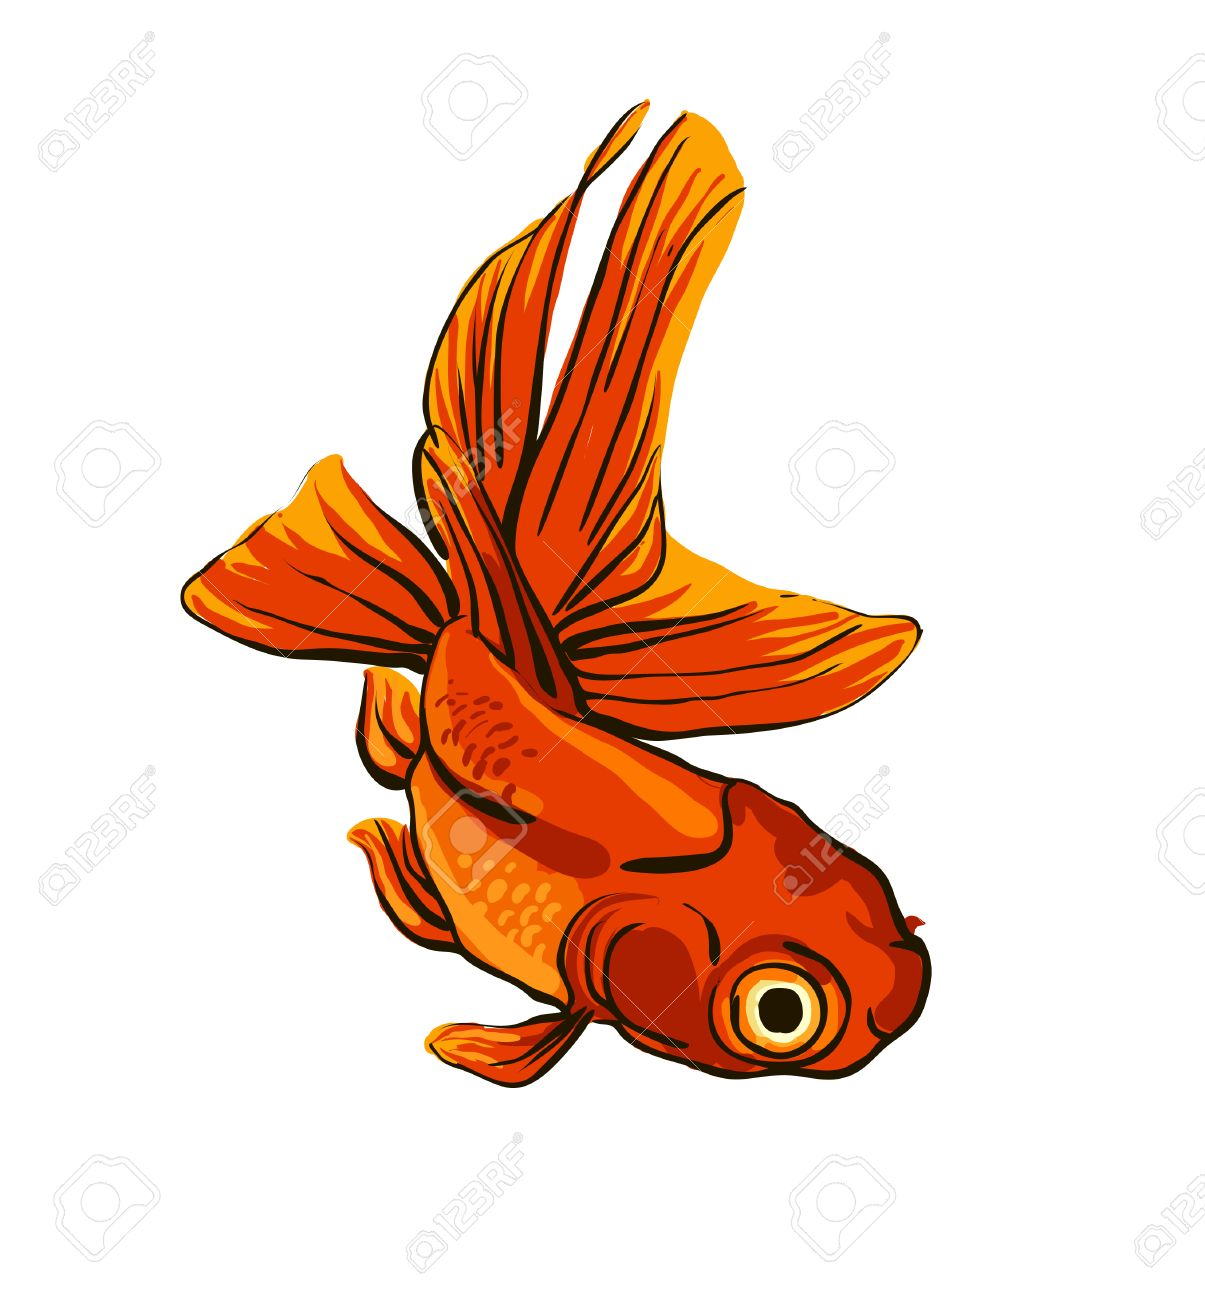 649 Koi Fish Vector Stock Illustrations, Cliparts And Royalty Free ...